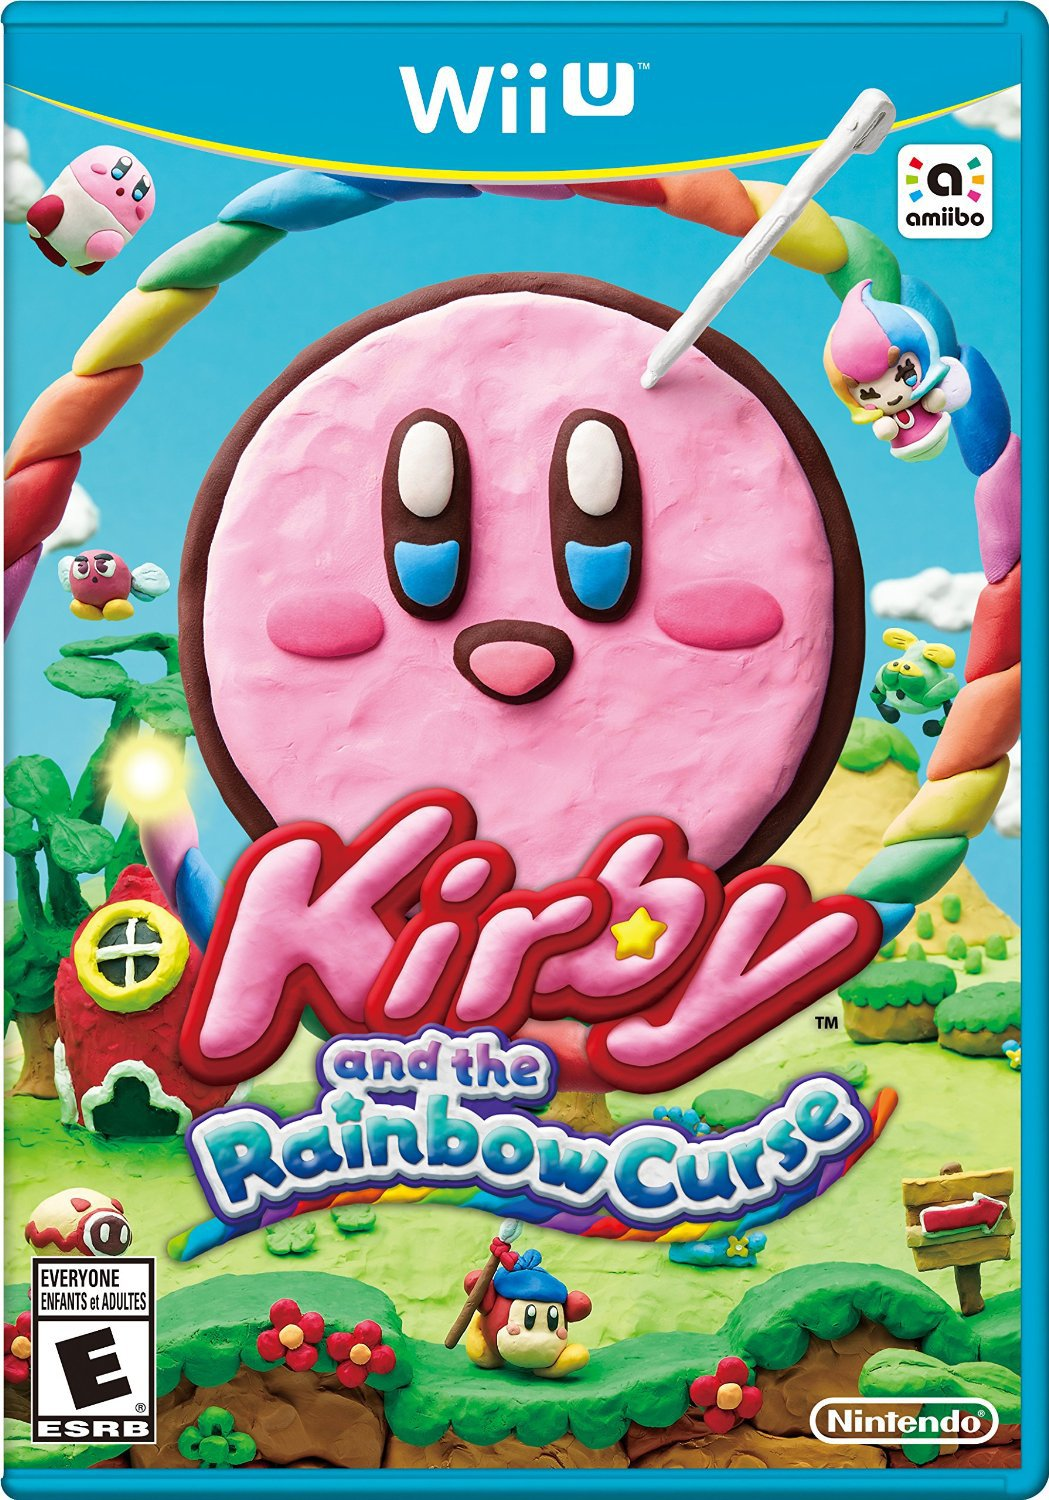 Kirby & The Rainbow Curse Wii U Physical Game Disc US